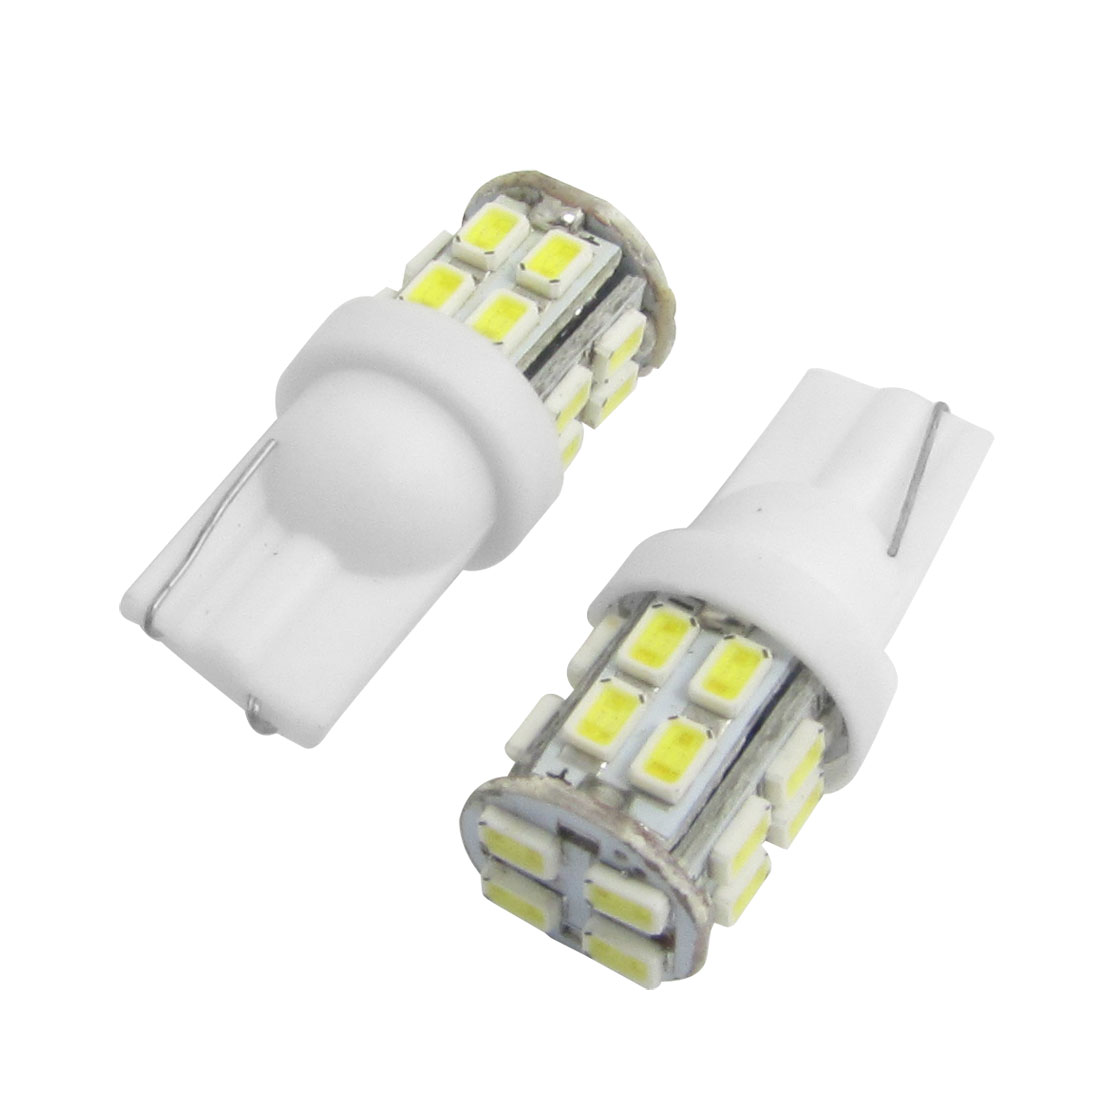 10x White 3020 1206 SMD 20 LED T10 W5W 194 168 192 Car Signal Side Light Bulbs